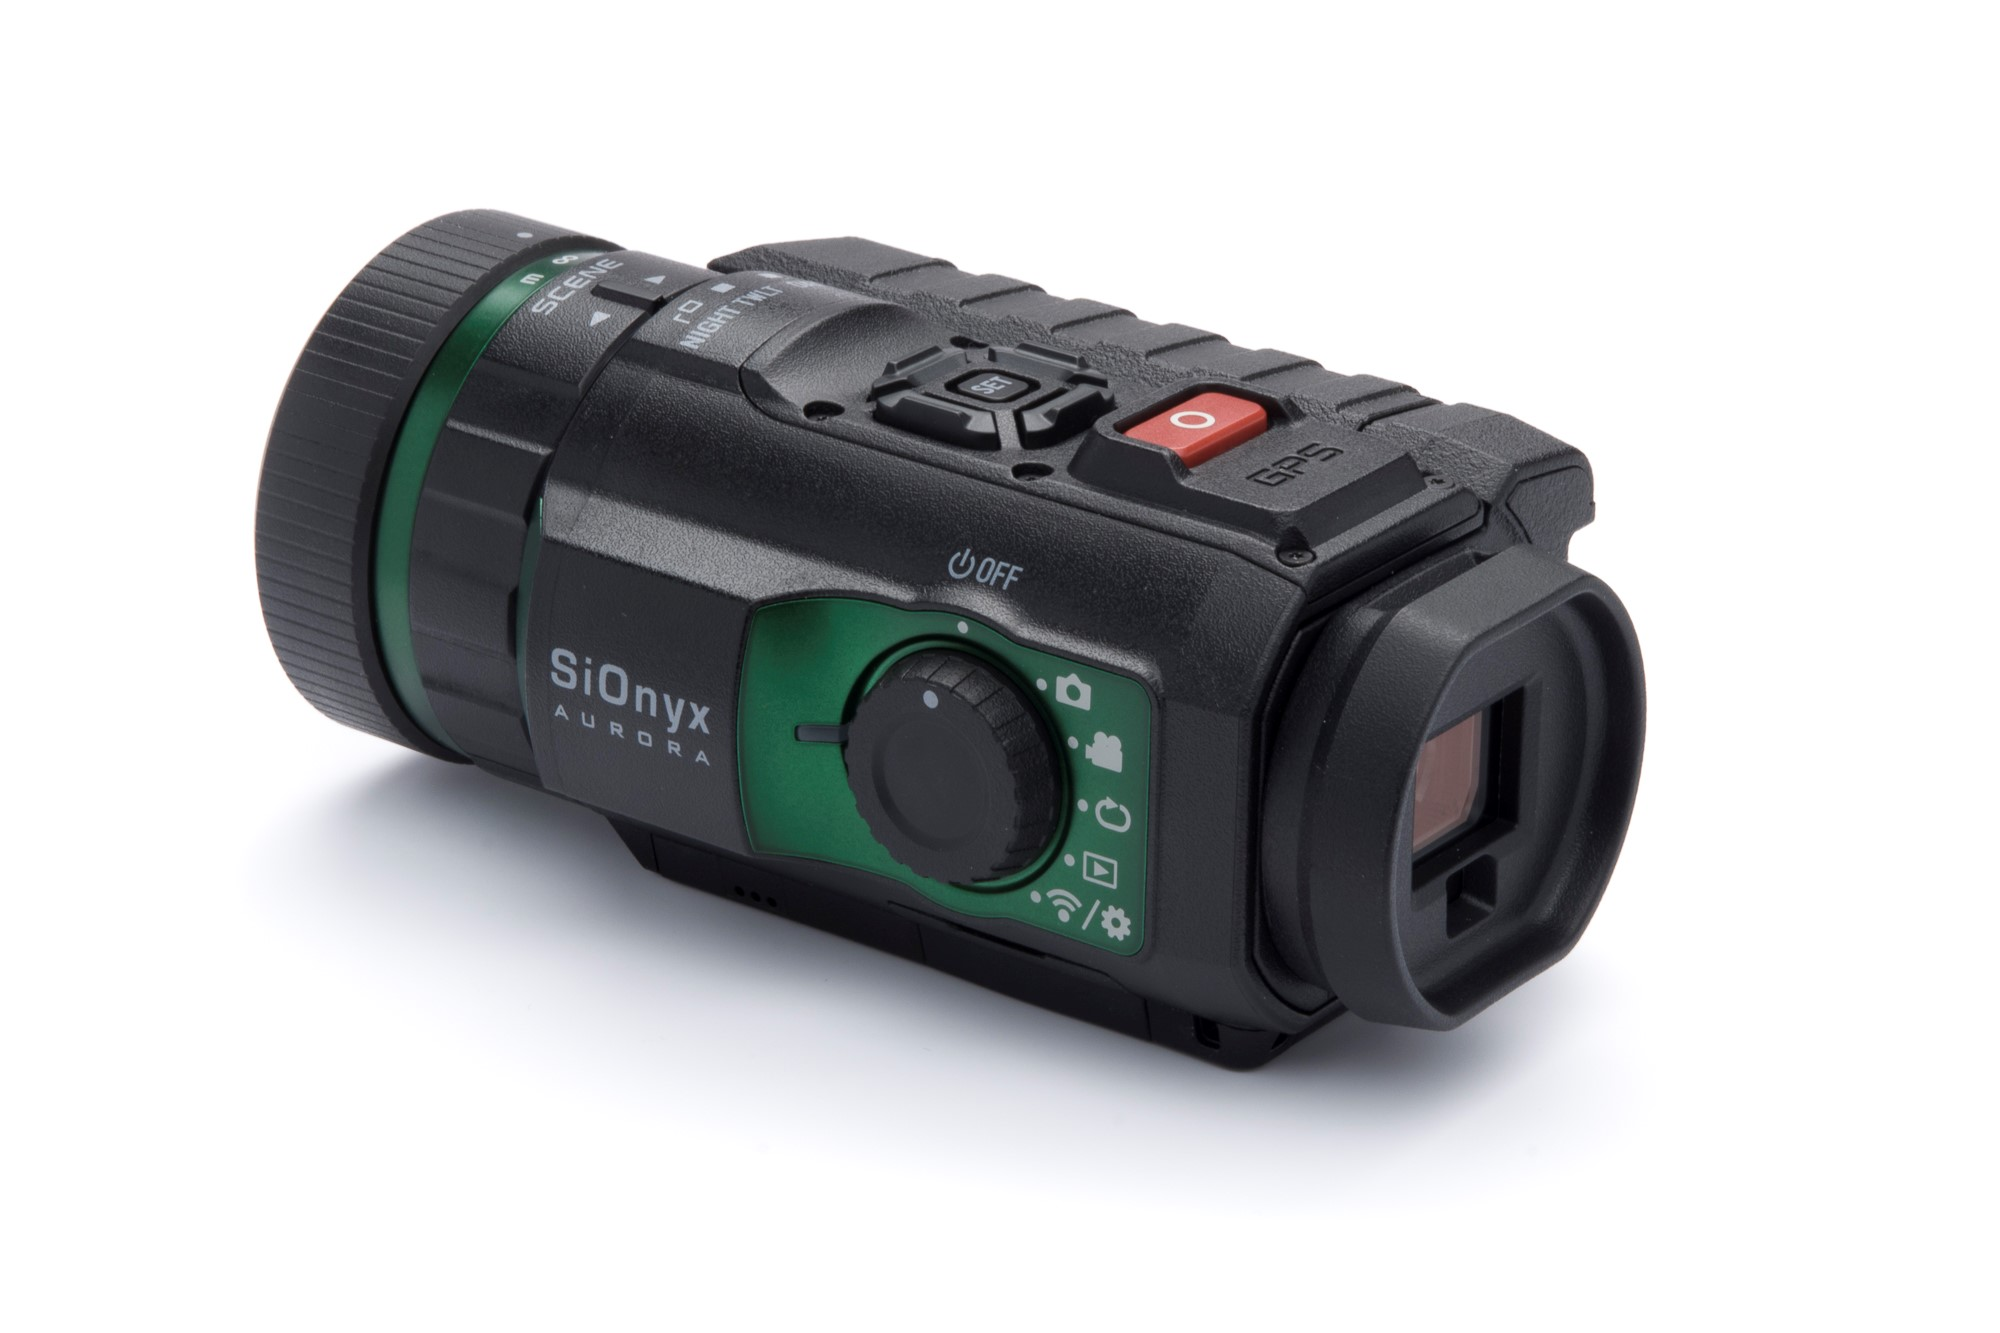 SiOnyx Aurora Night-vision Camera Monocular